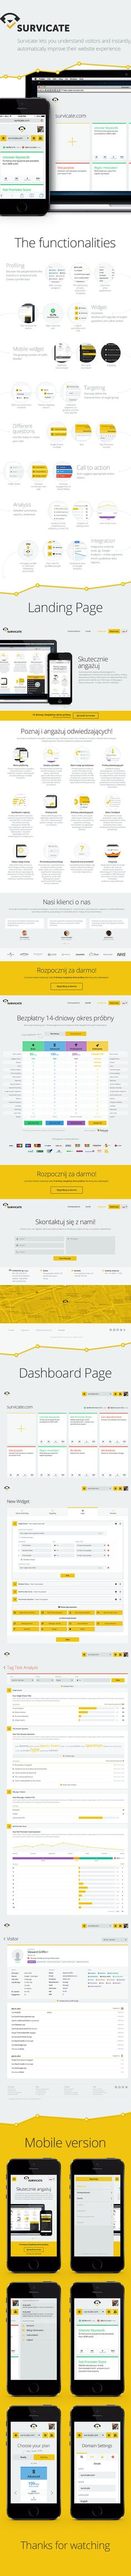 Survicate | We guide your visitors towards purchase on Behance